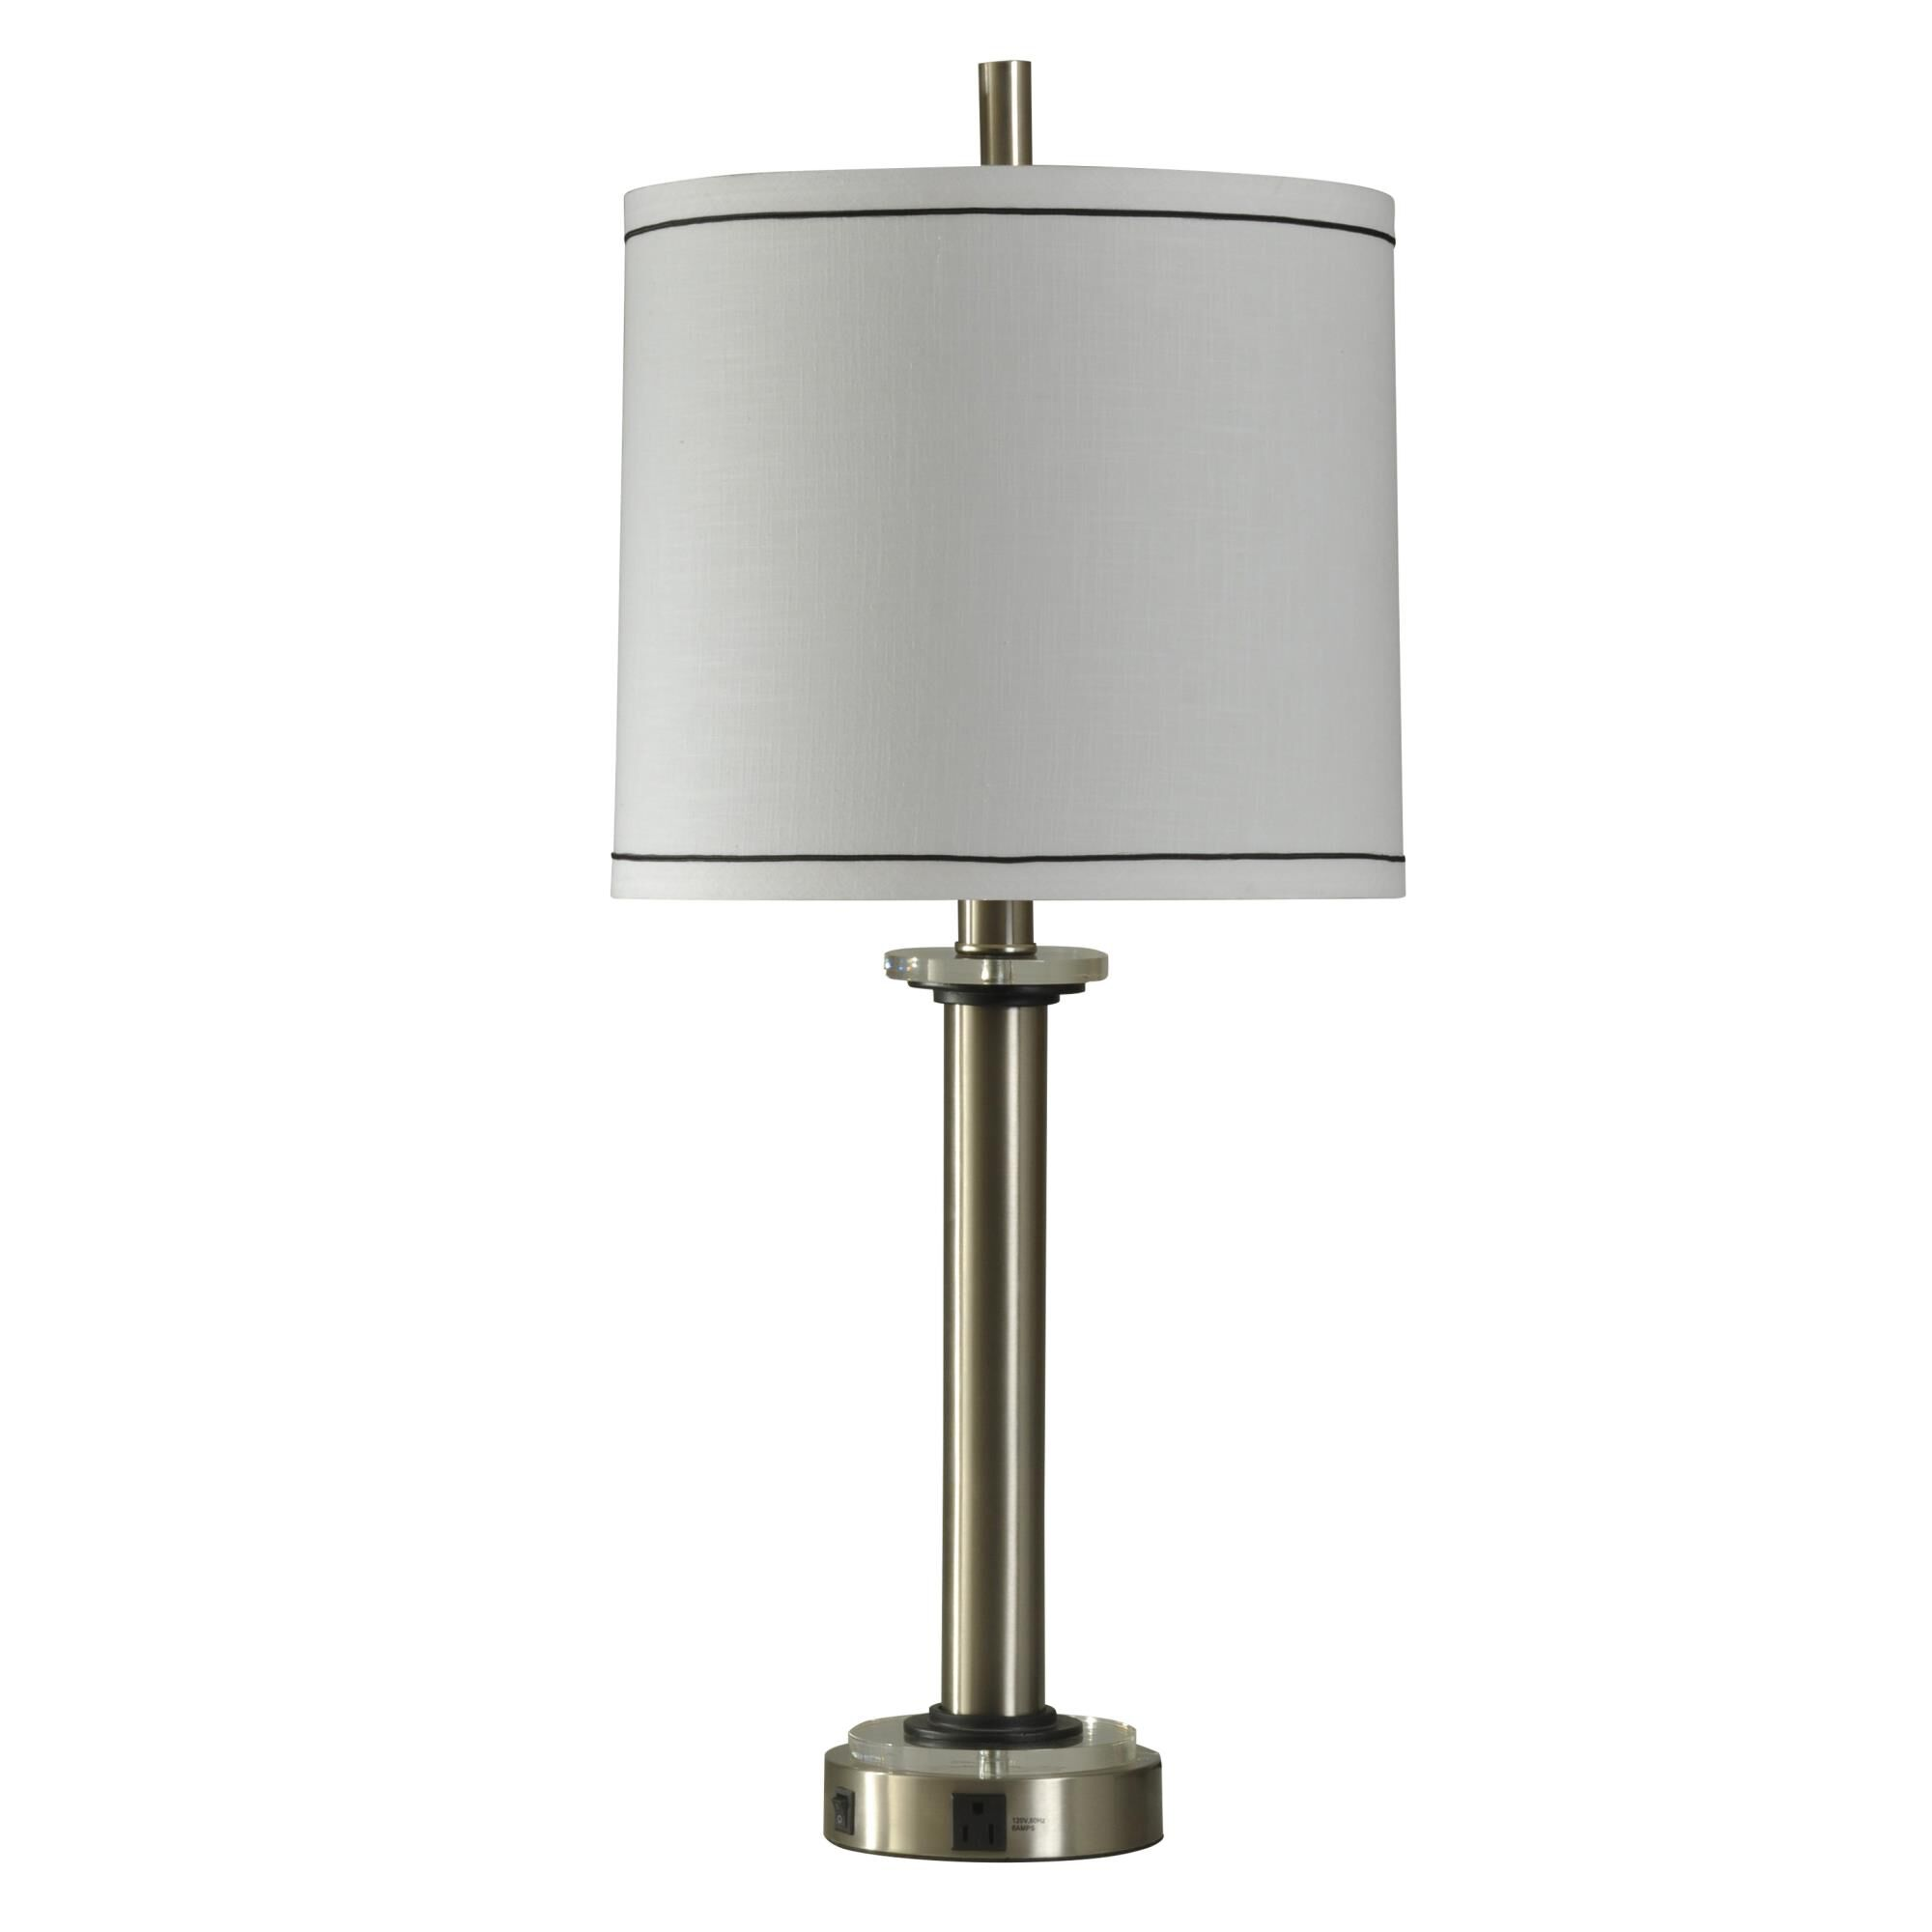 Stylecraft Levi 34 Inch Table Lamp Levi - TL310236BWDS - Transitional